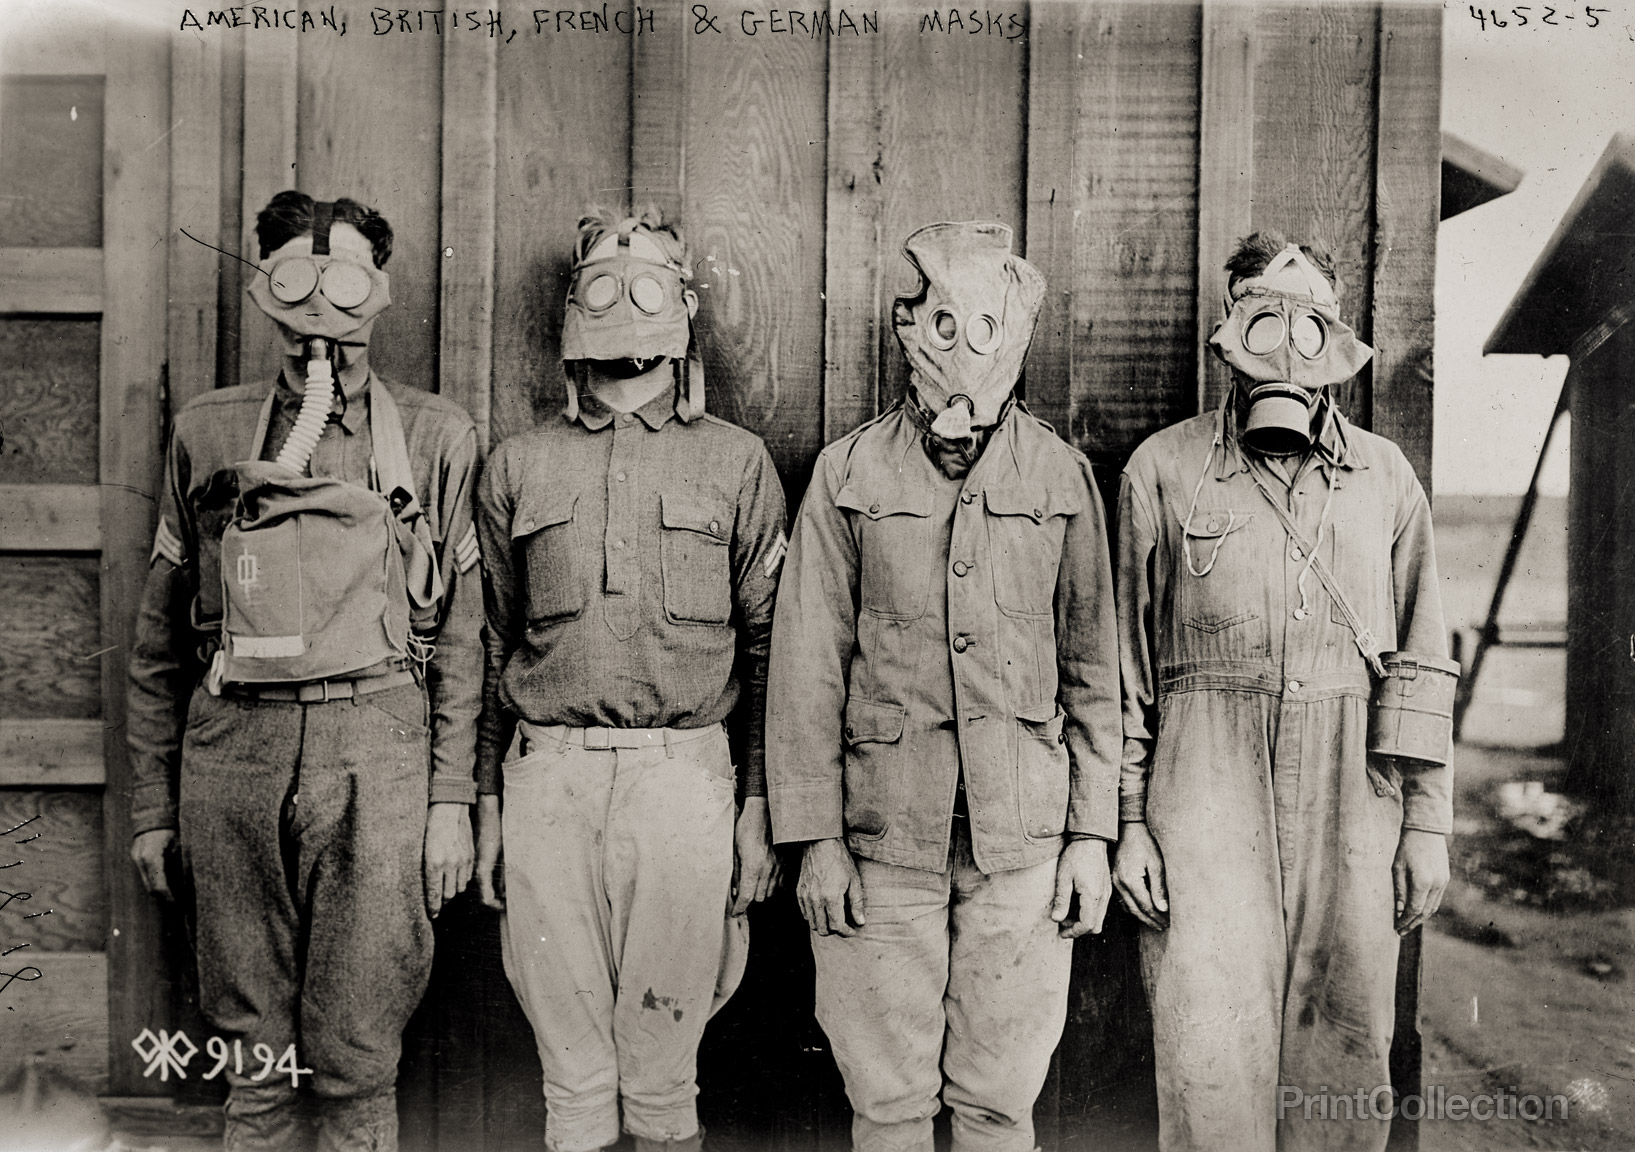 Gas masks from various periods during WWI.   The third from right is an early British PH mask.